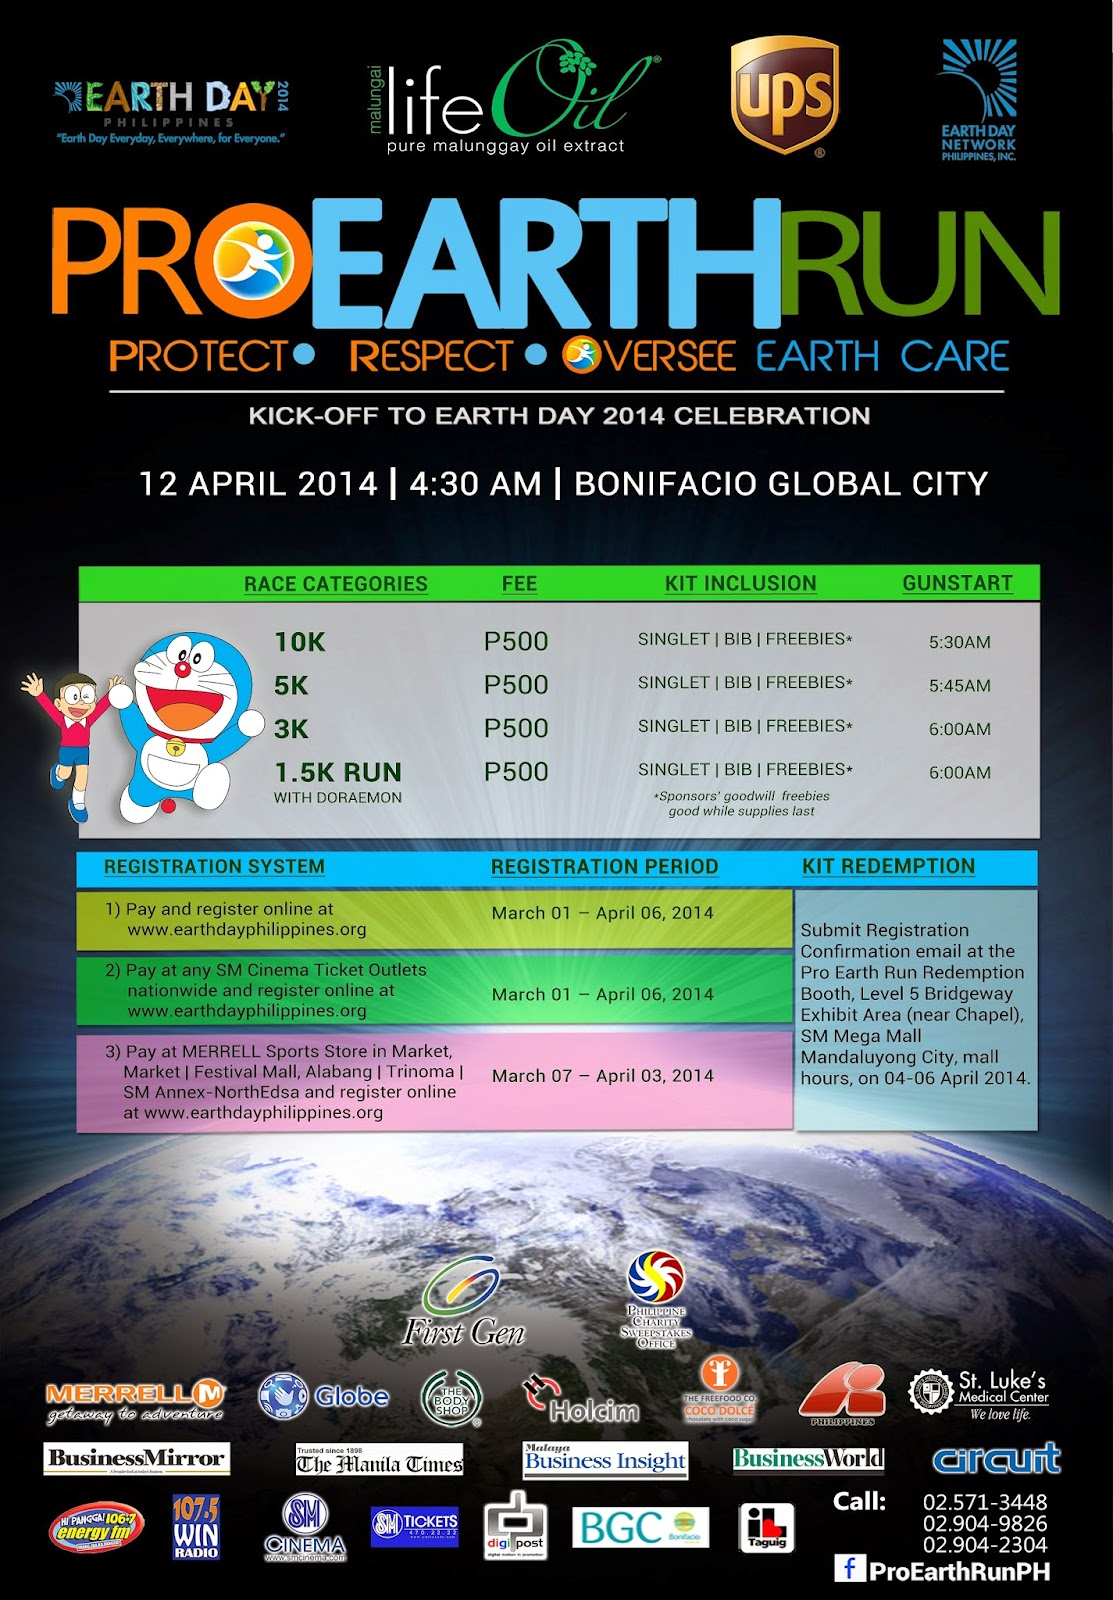 Pro Earth Run: Protect, Respect, Oversee